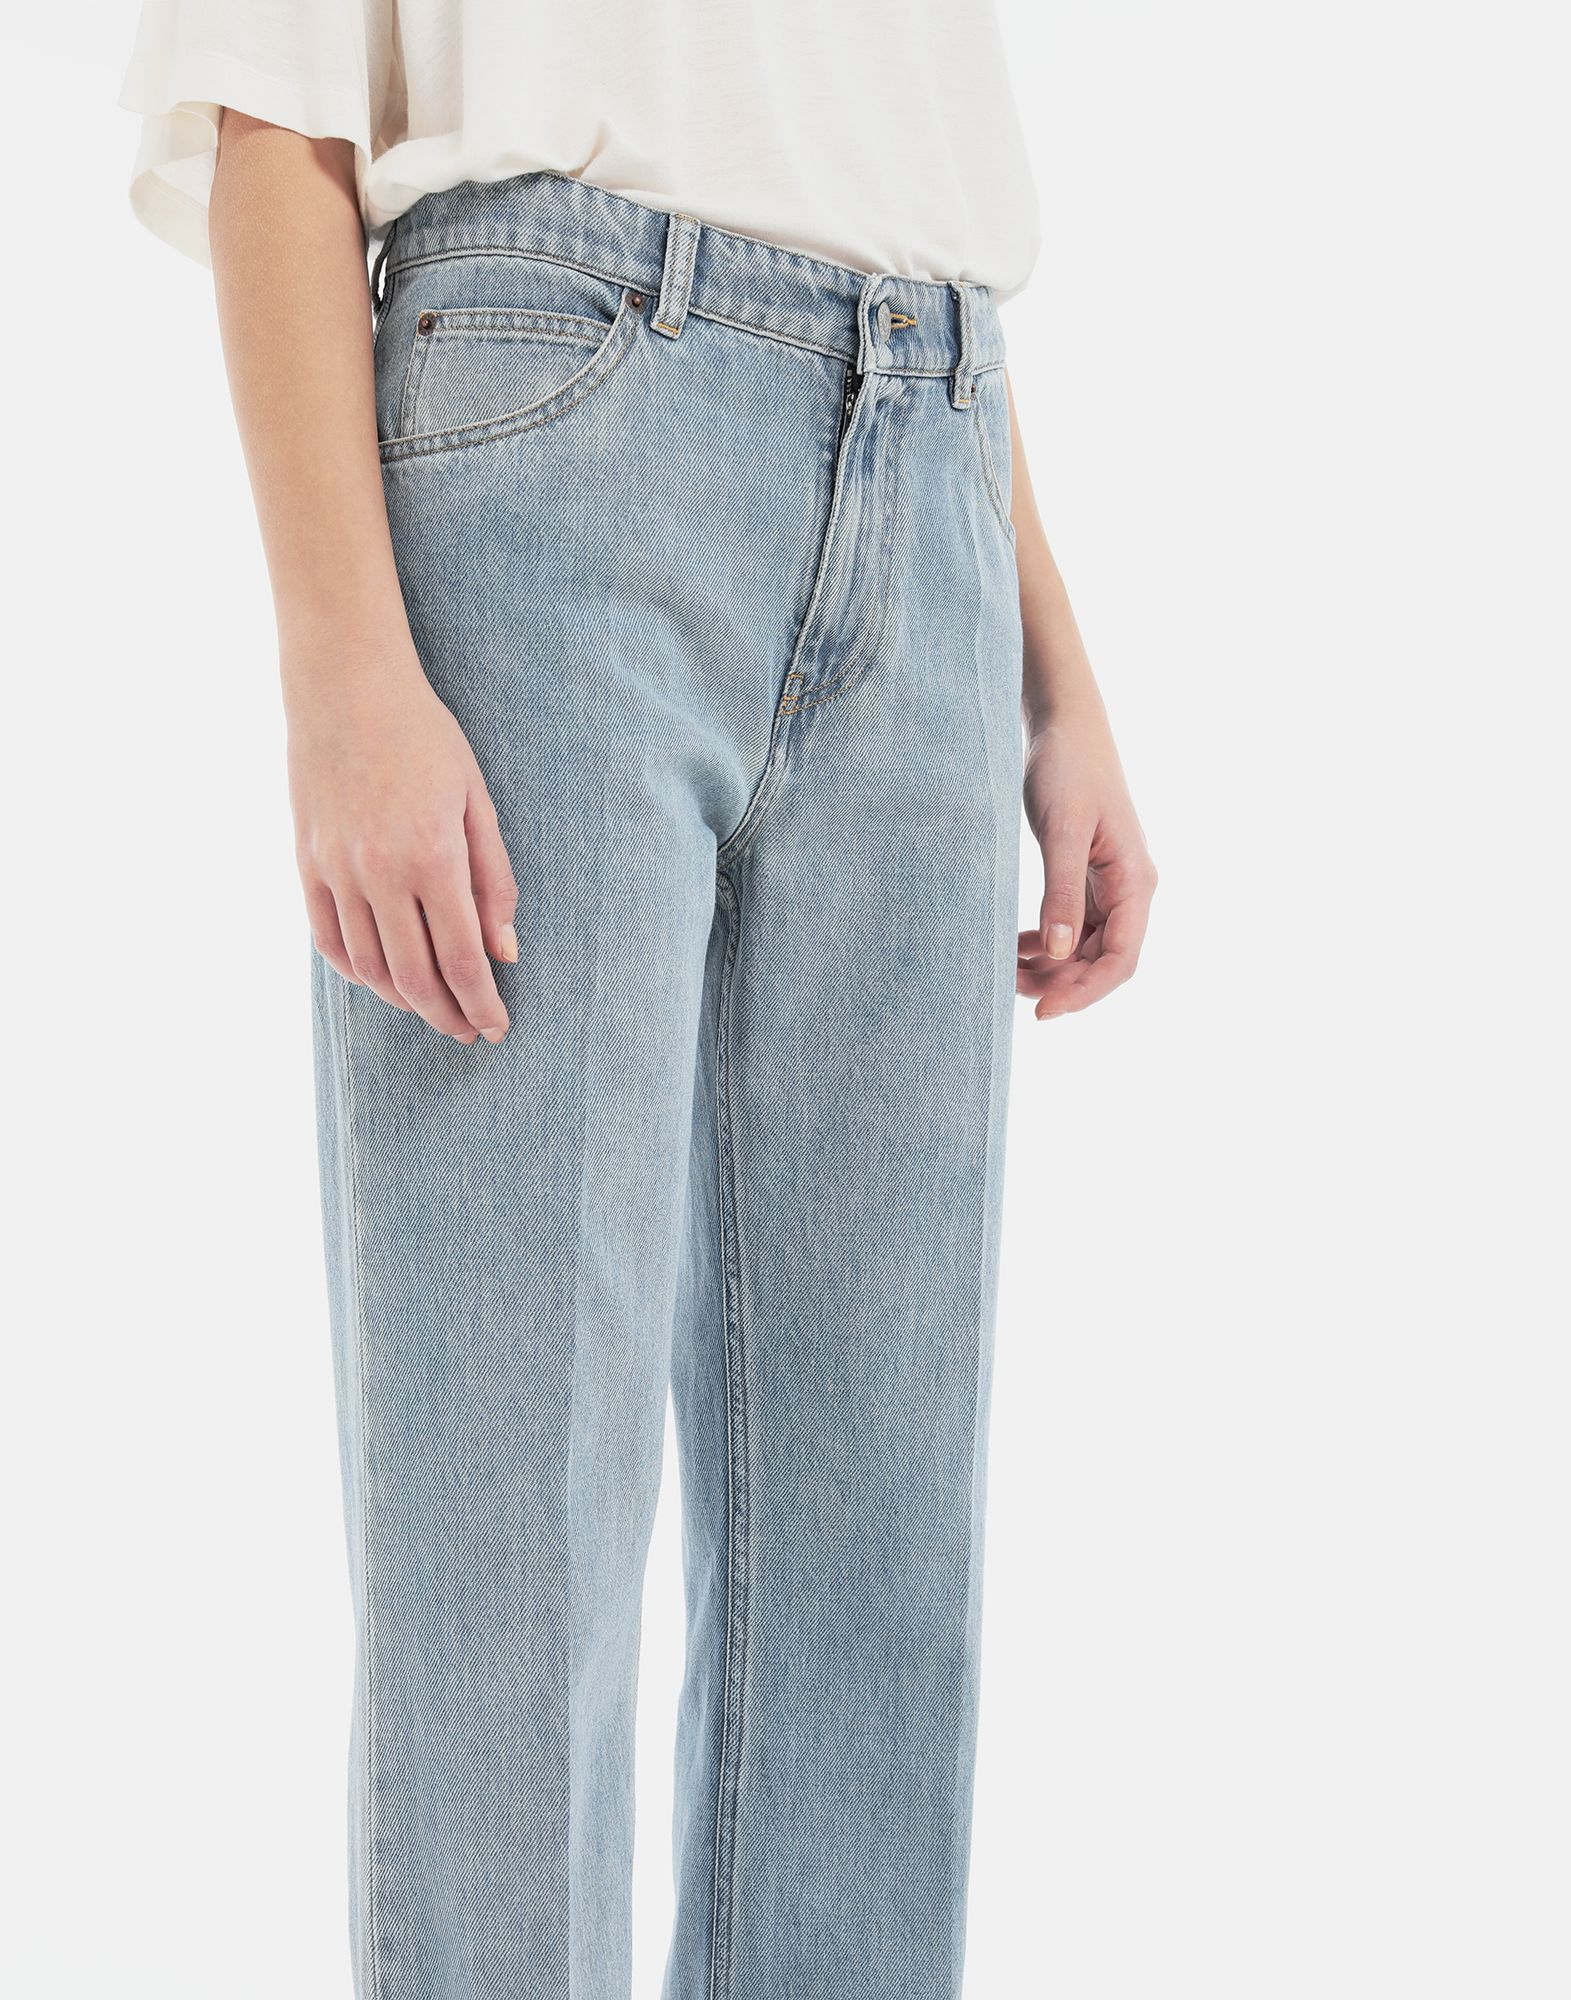 MM6 MAISON MARGIELA Relaxed-fit jeans Jeans Woman a